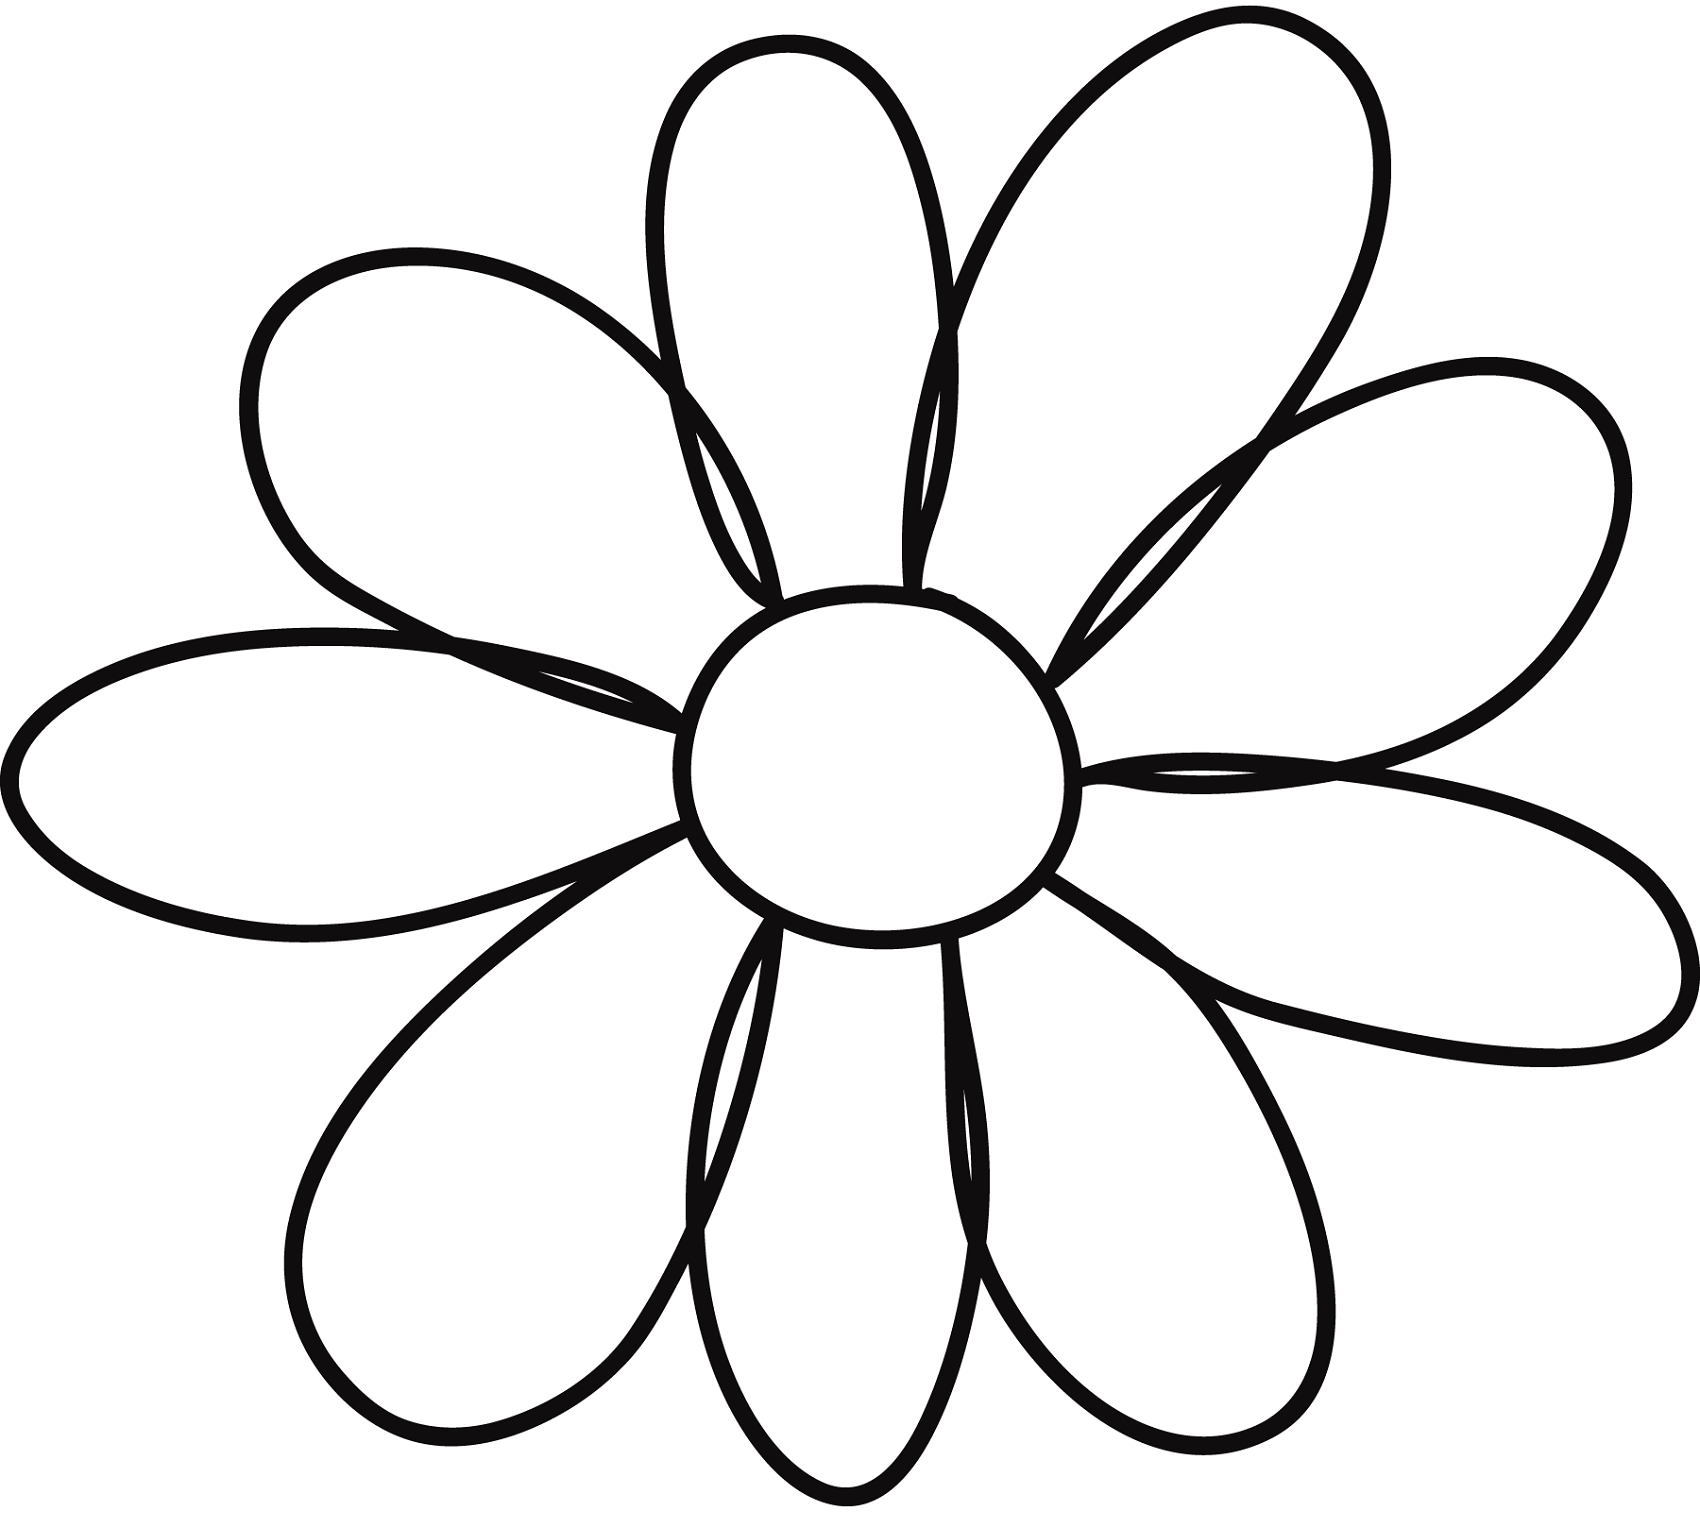 coloring outline images of flowers flower template for children39s activities activity shelter flowers outline images of coloring